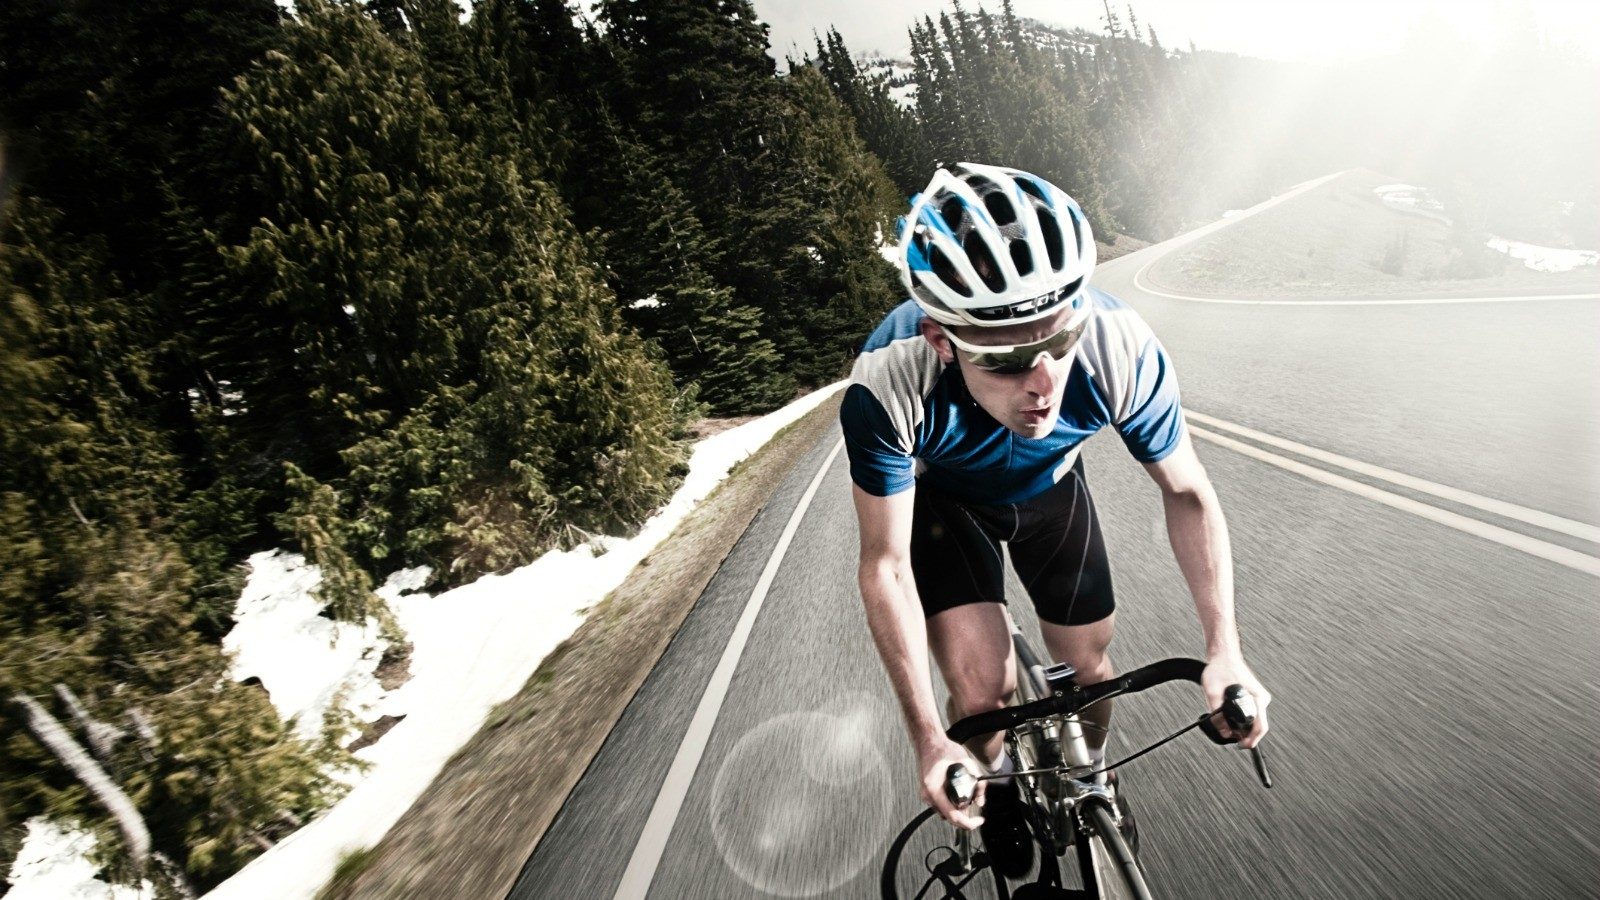 Information is flooding into the brain as we ride our bikes